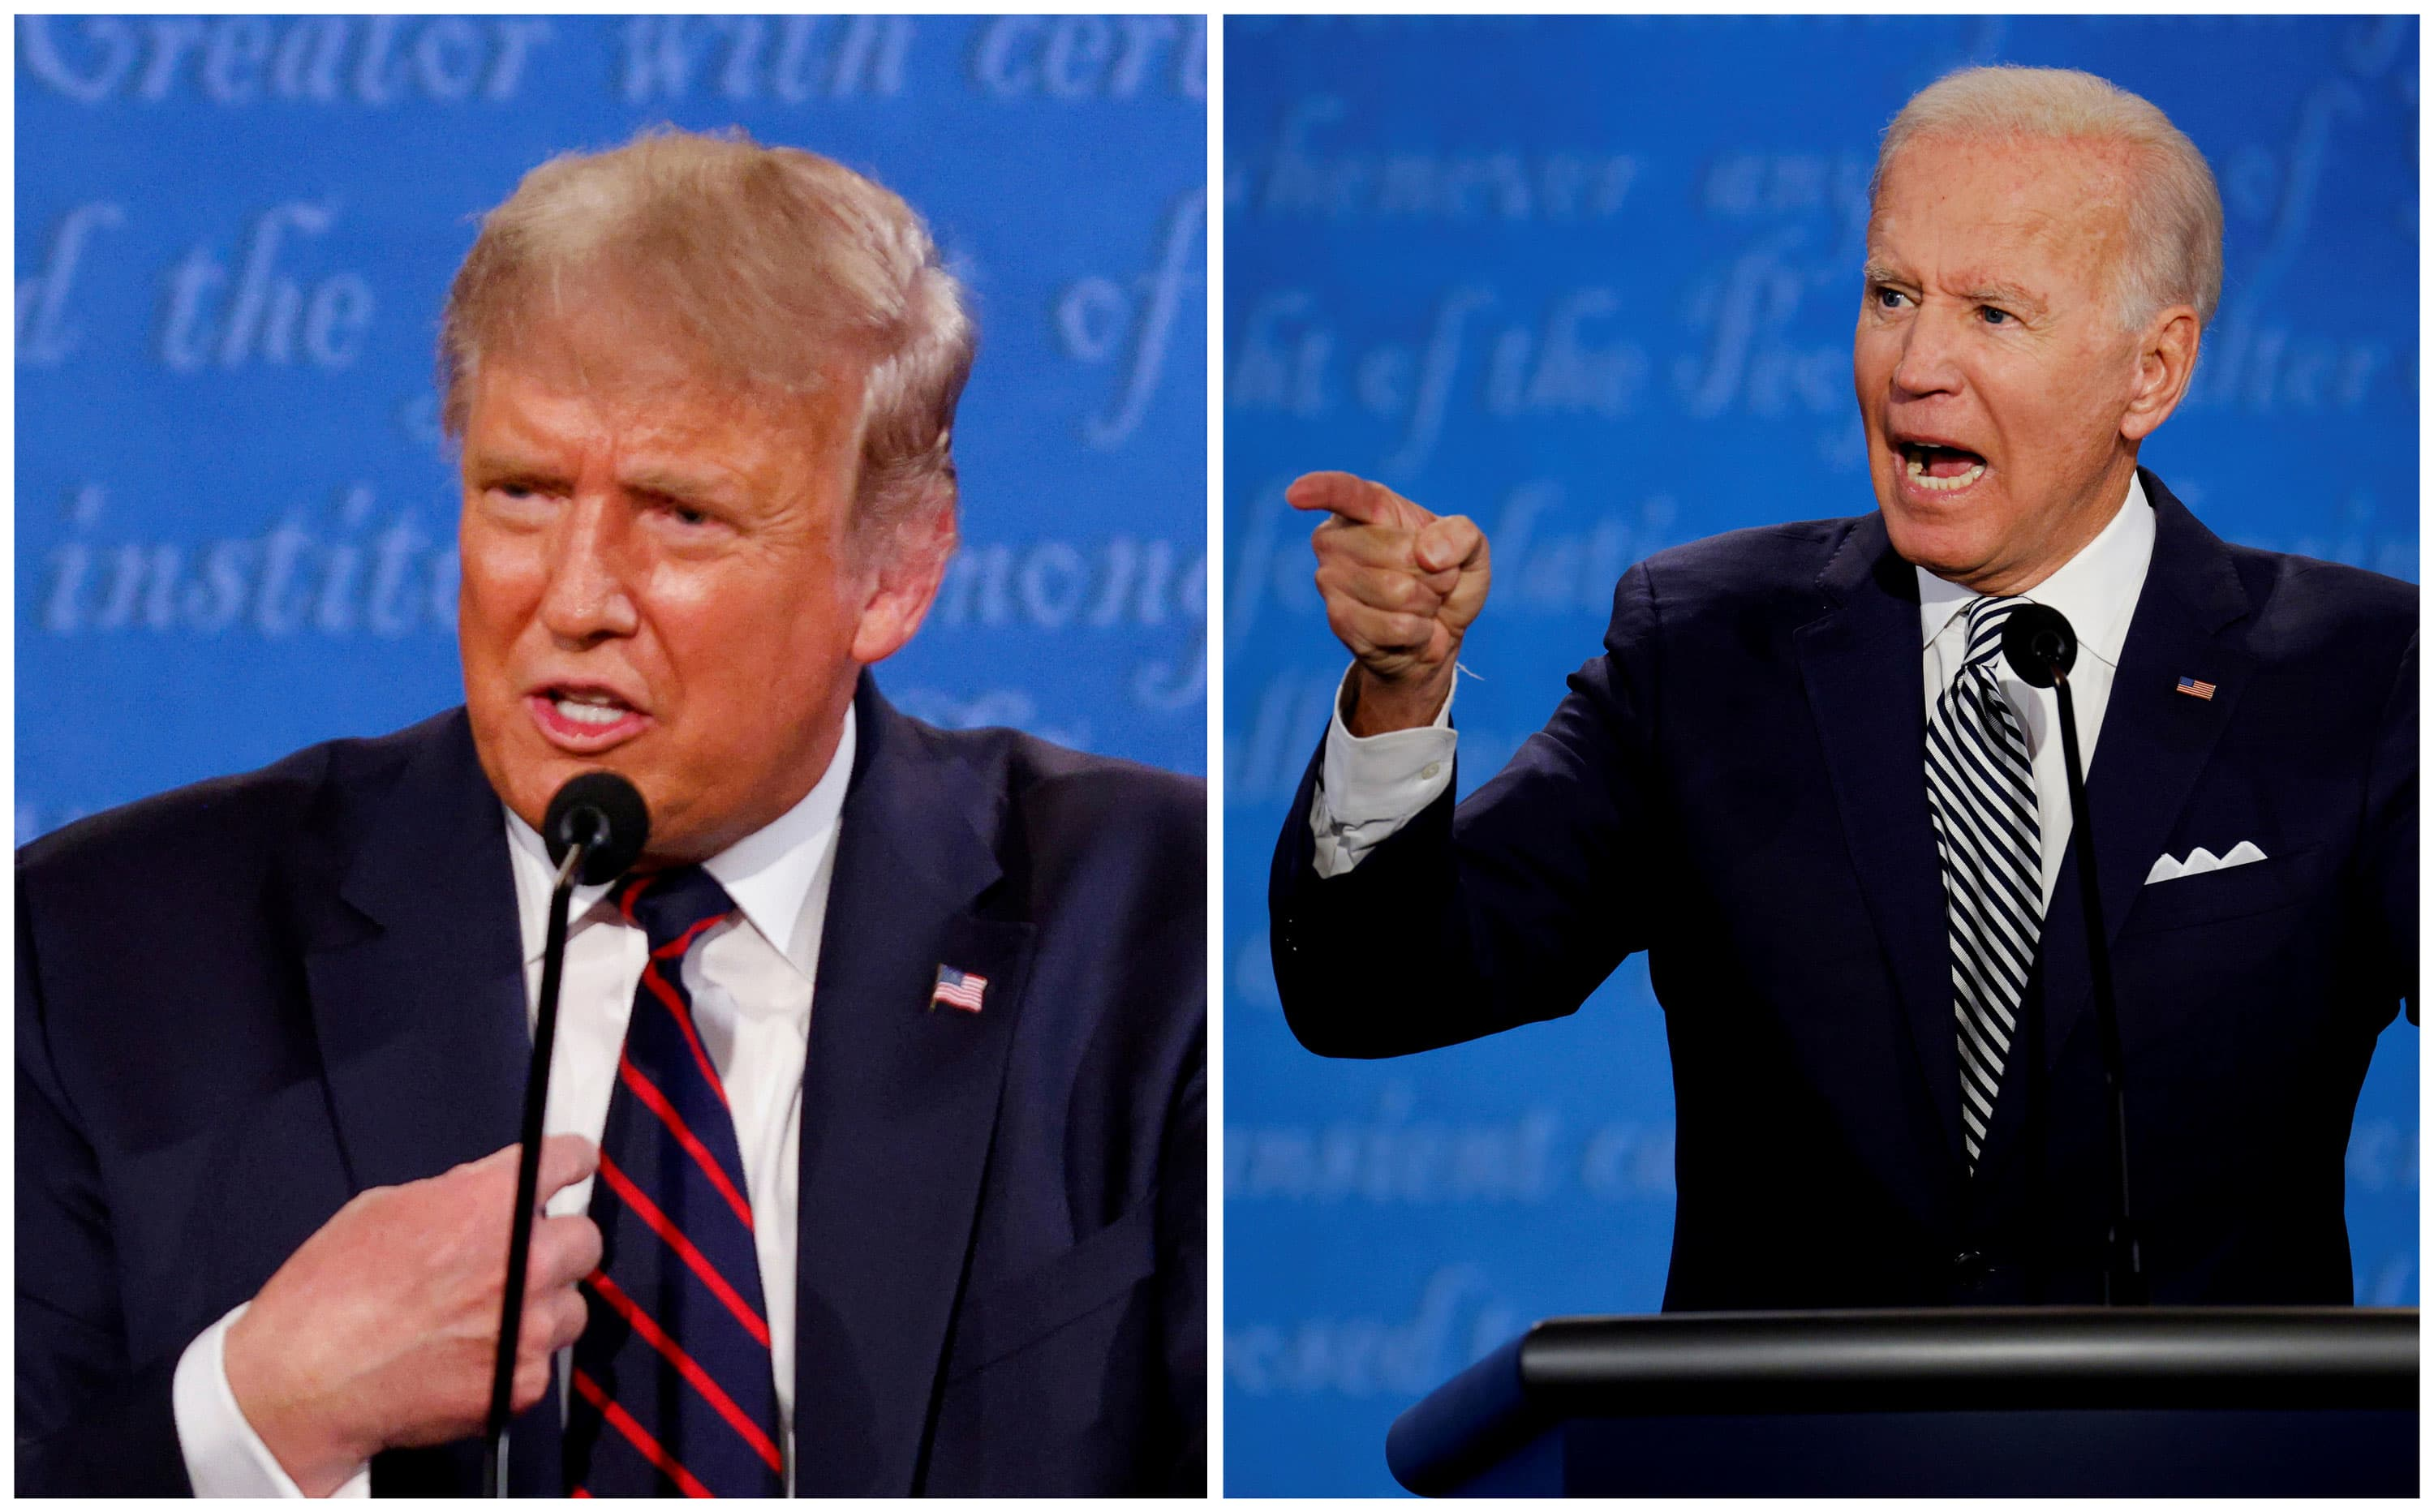 For student loan borrowers, the differences between a Trump and Biden presidency